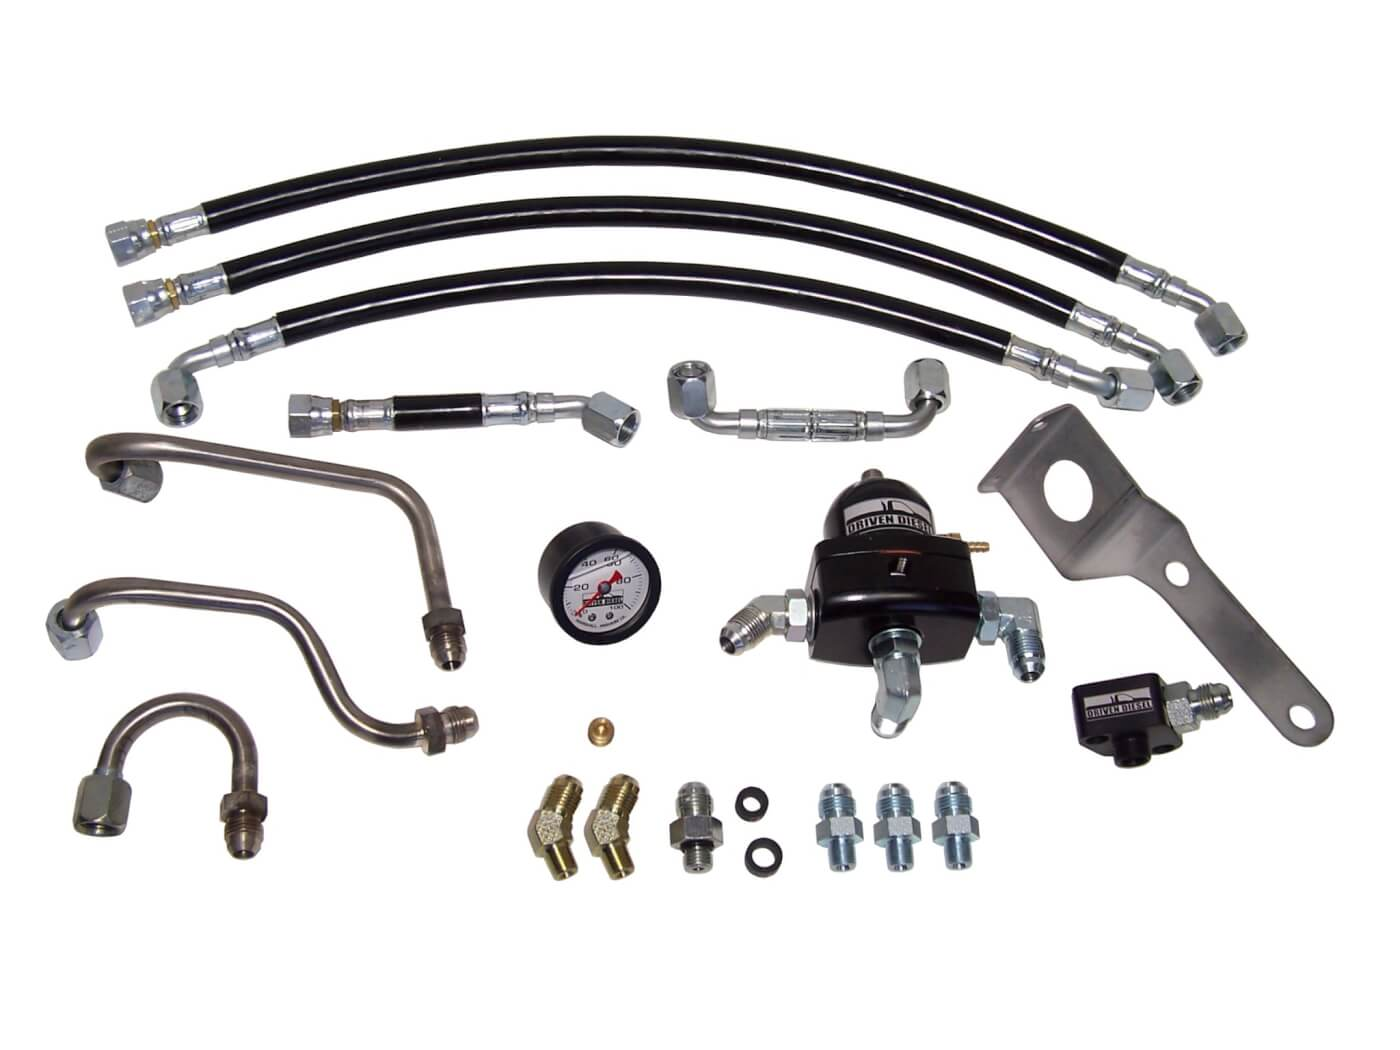 Return Fuel System for the '99-'03 Ford 7.3L Power Stroke